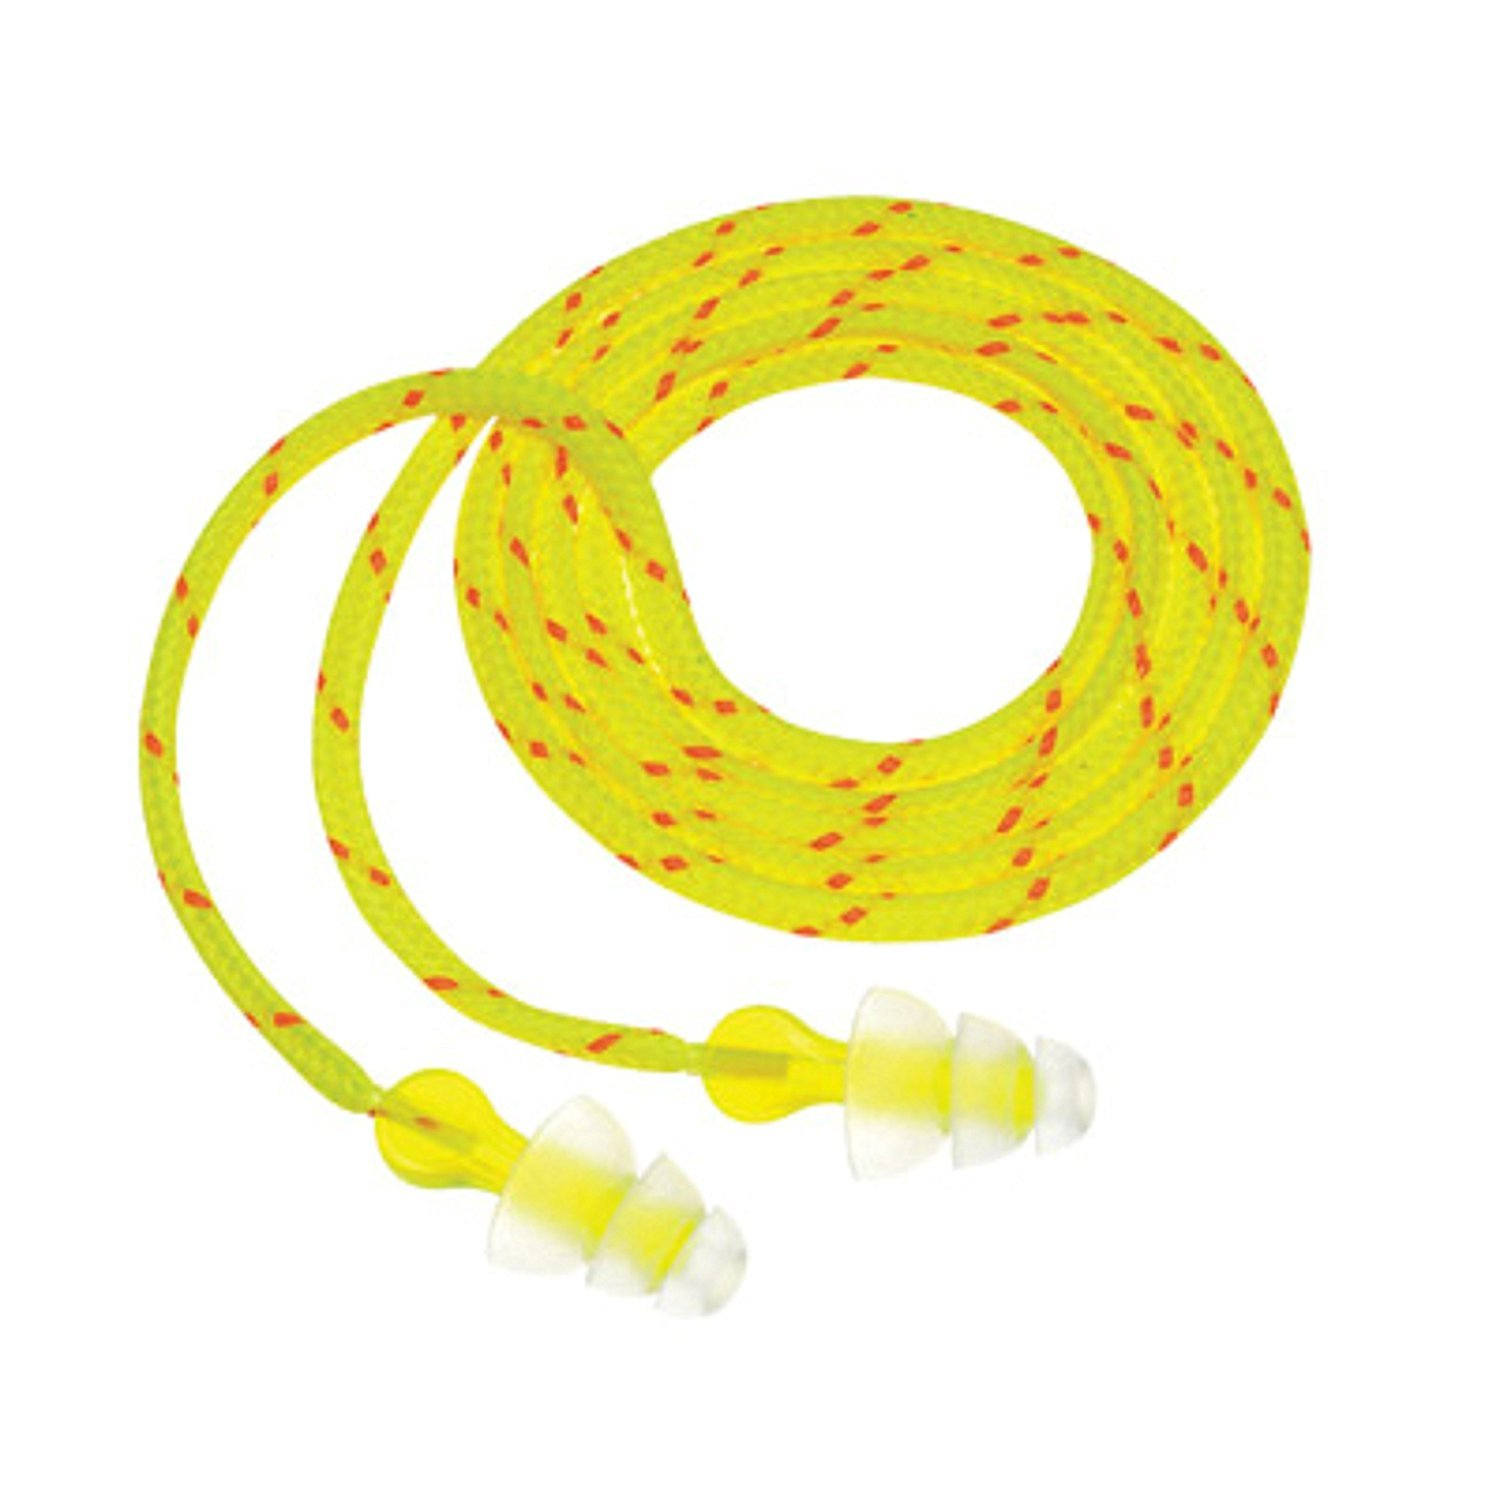 3M P3001 Multiple Use Peltor NEXT Tri-Flange Triple-Flange Elastomeric Polymer Corded Earplugs With Cloth Cord And LiveWire Stem (100 Pair Per Box) (100/PR)